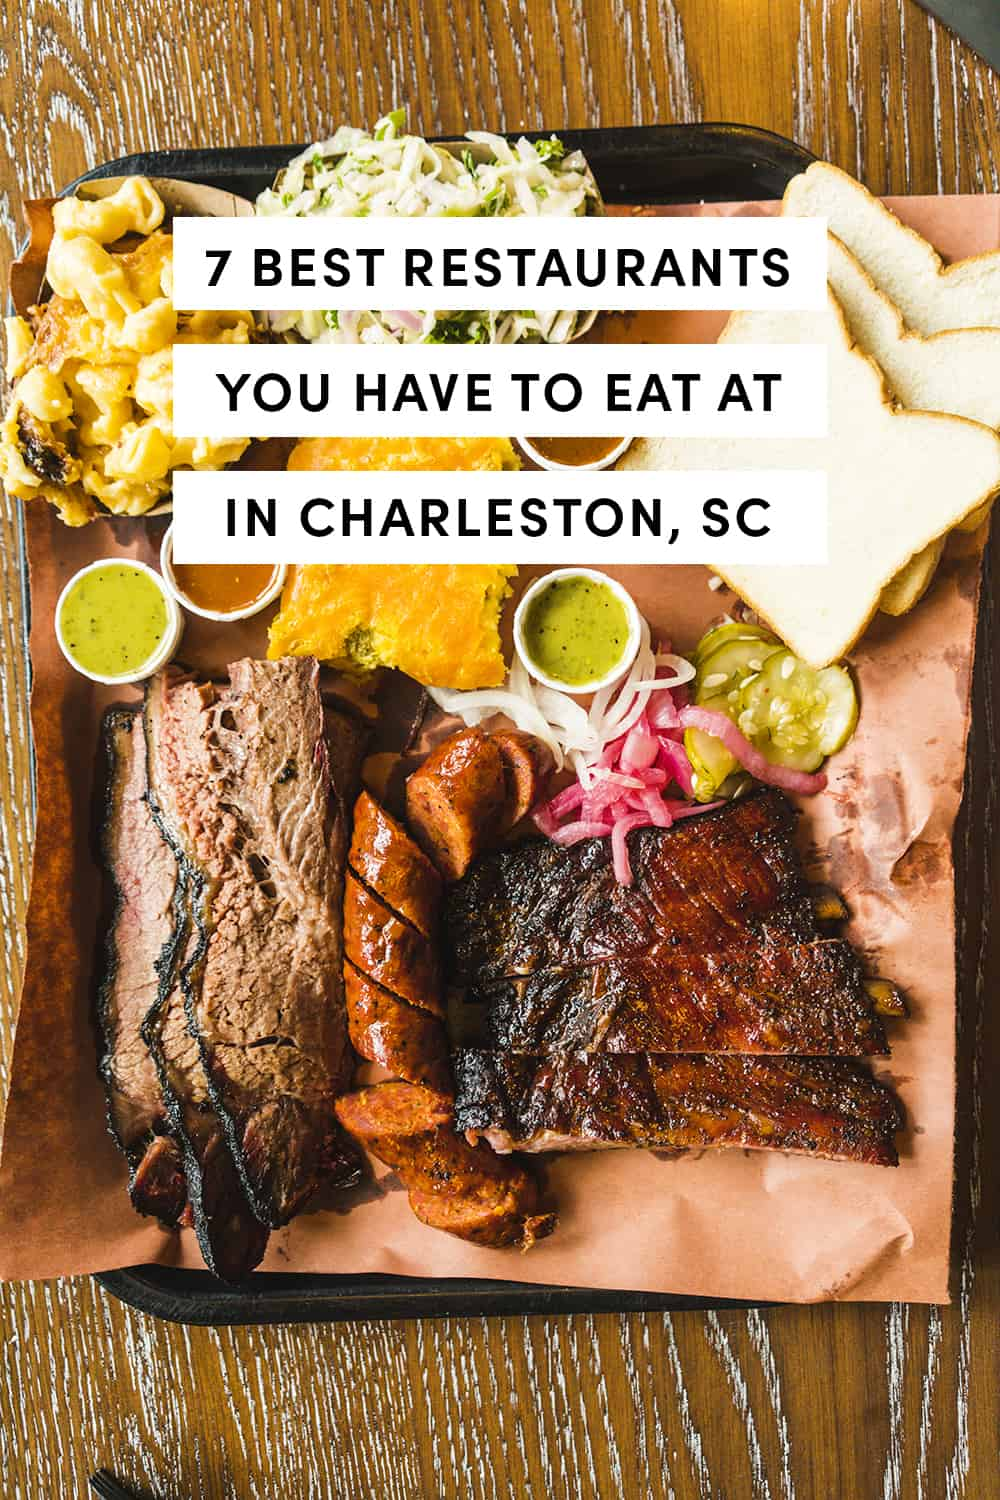 7 Best Charleston Restaurants To Eat At On Your Visit